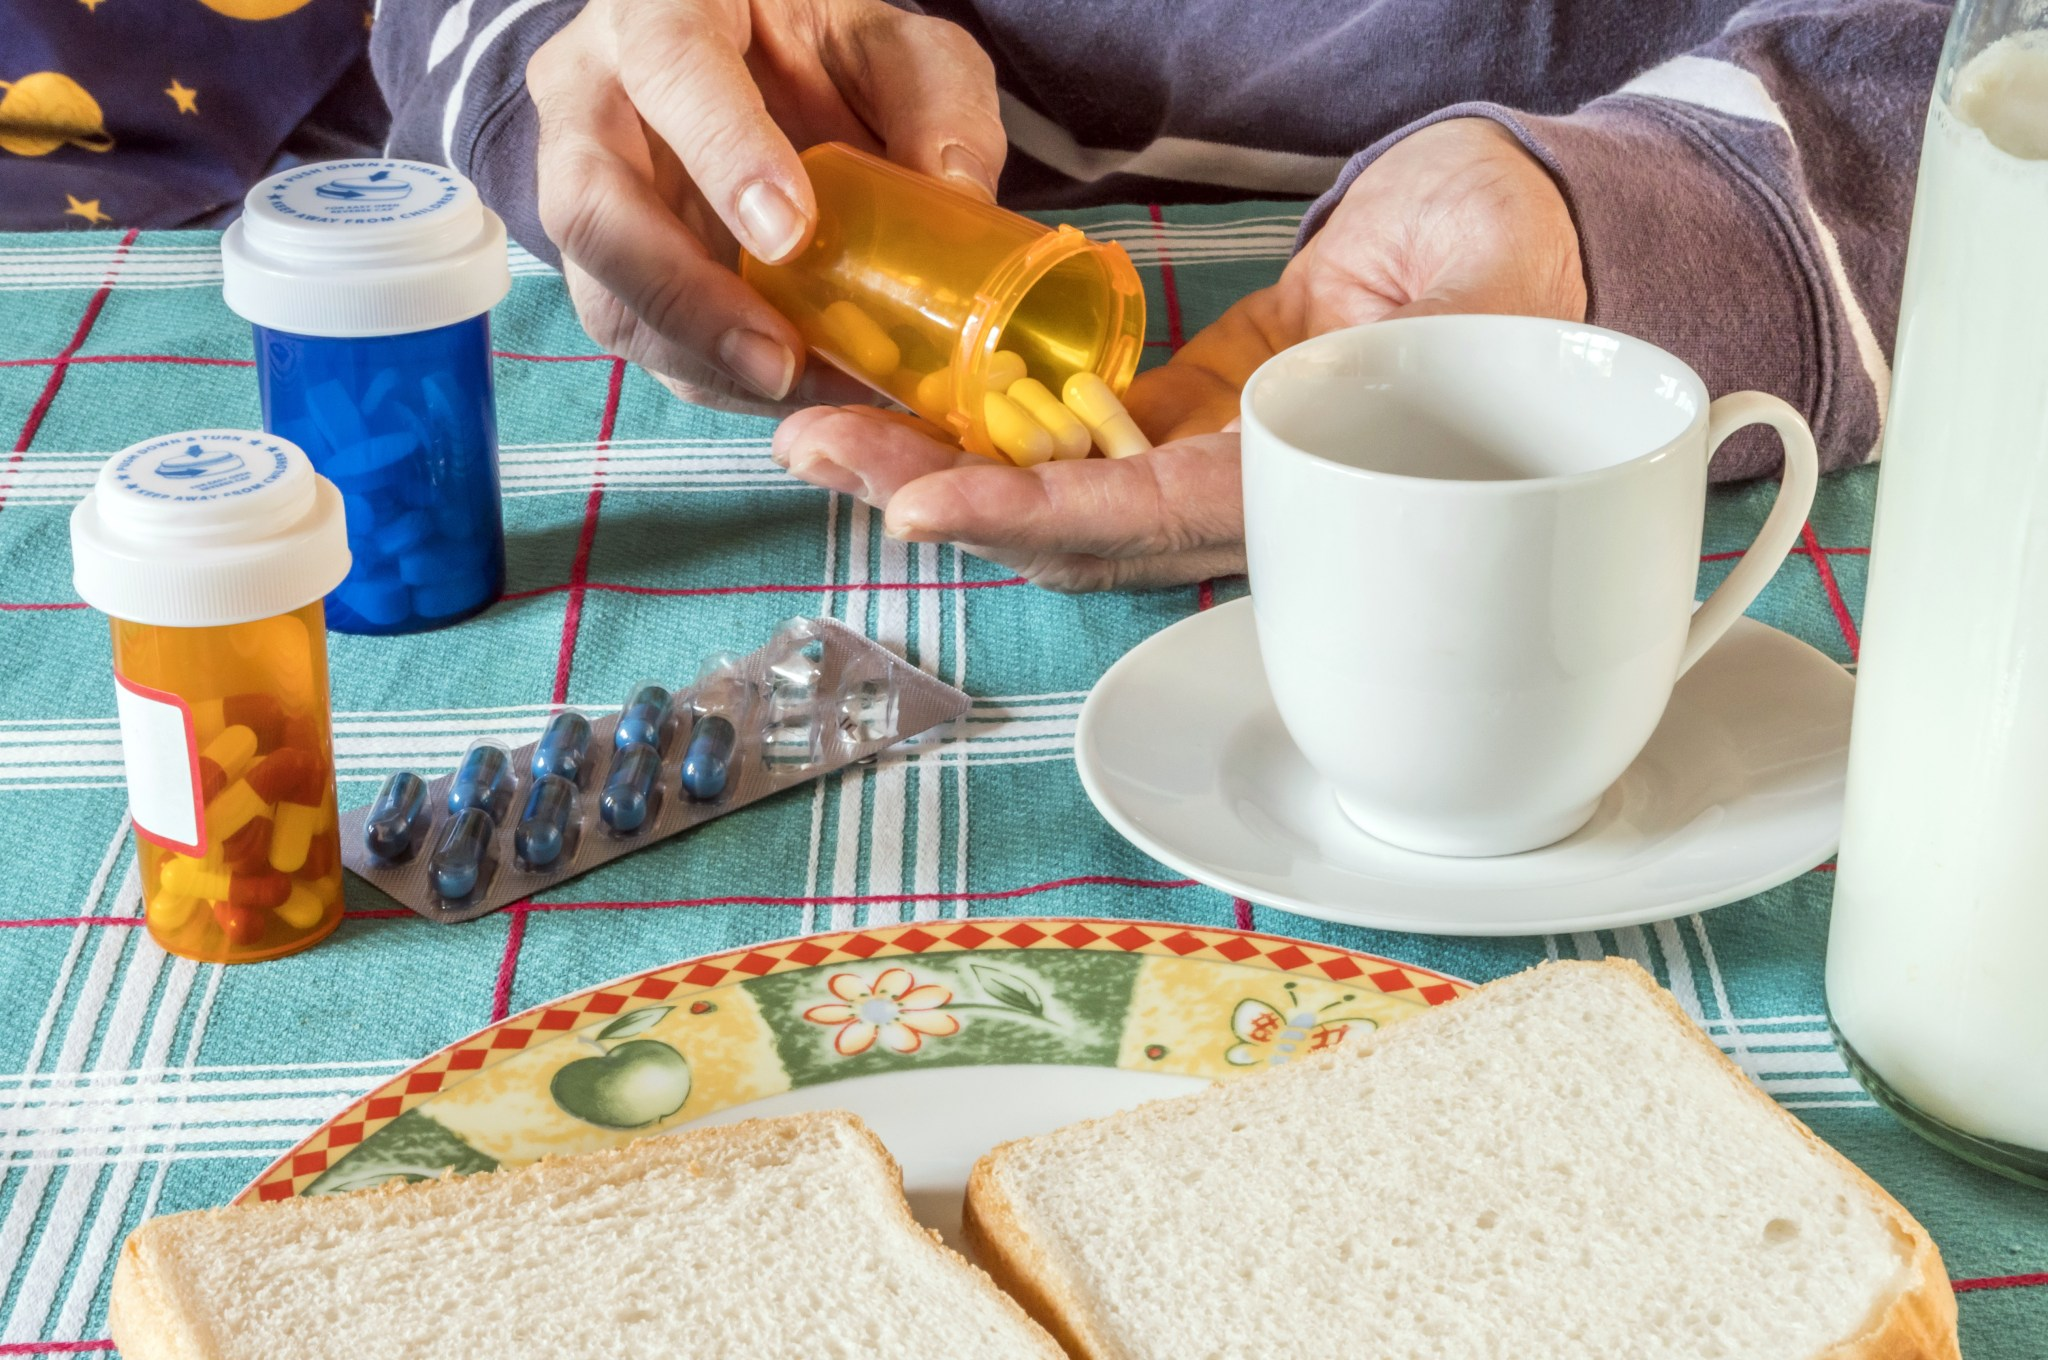 Person takes medication during breakfast, conceptual image